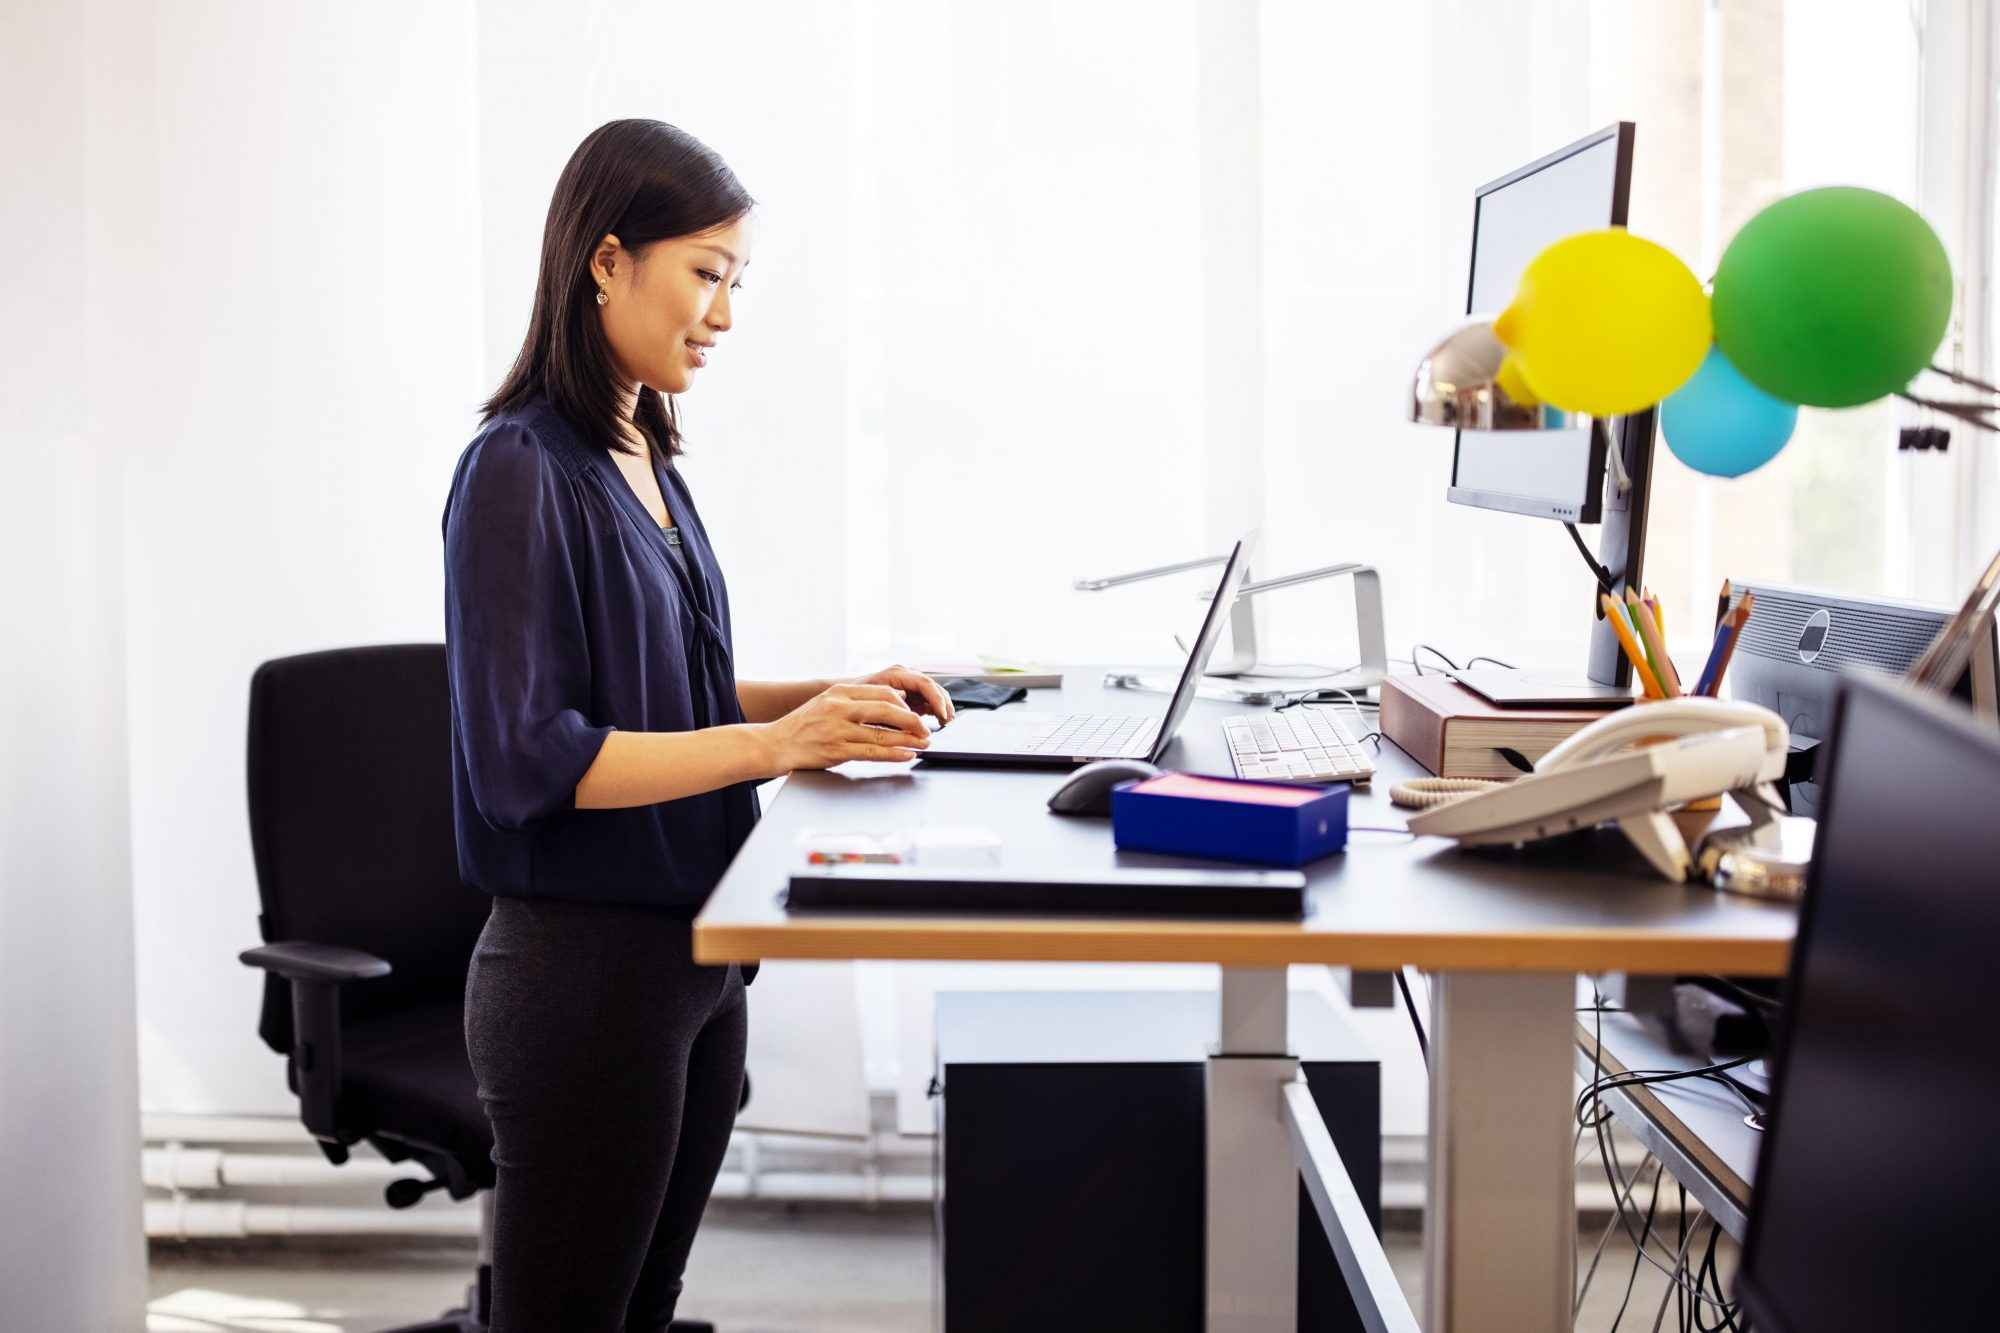 woman working using standing desk